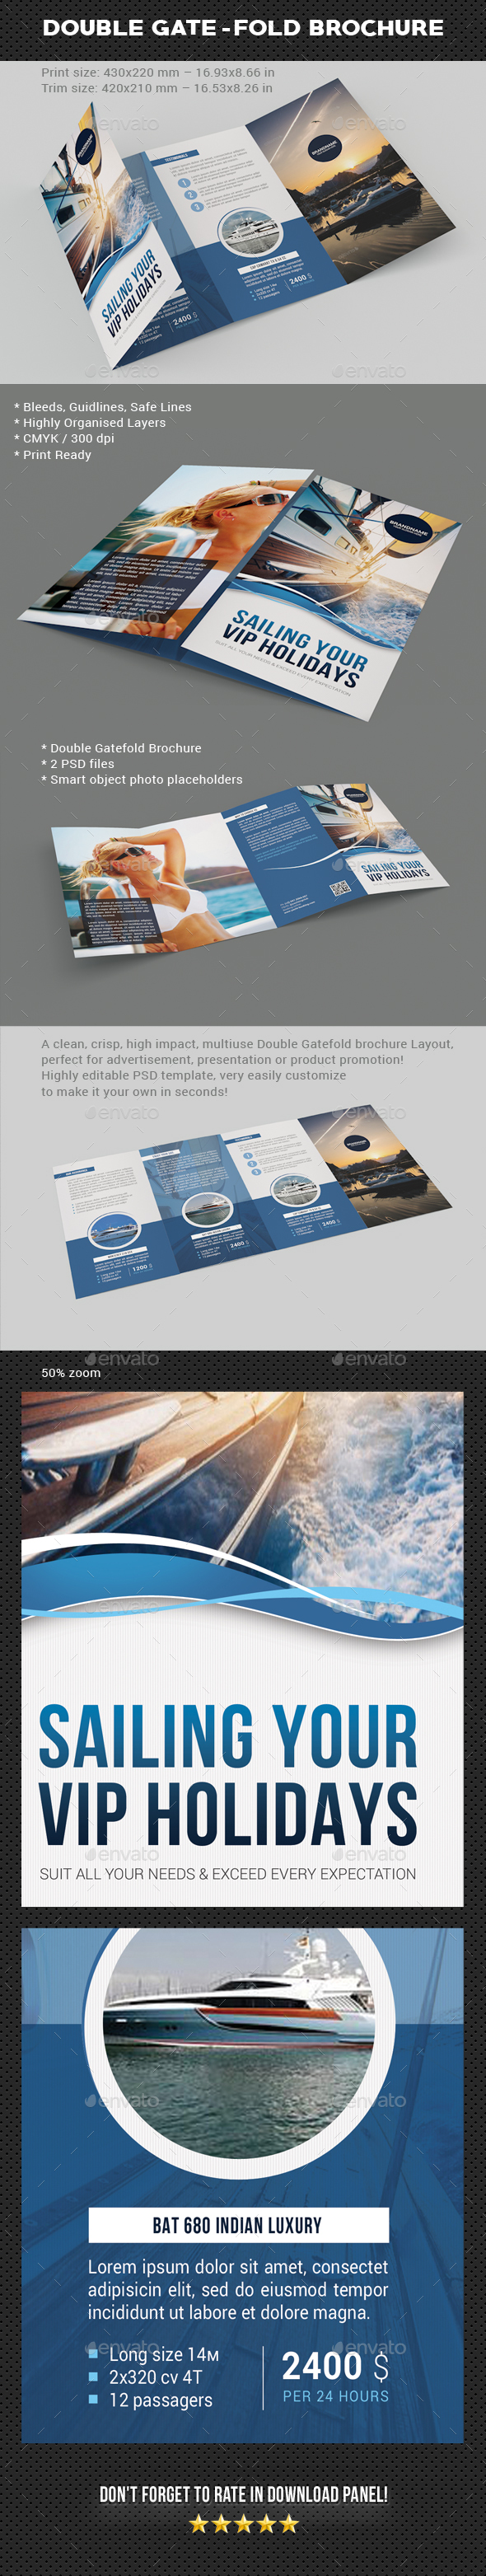 GraphicRiver Yacht Sailing Double Gate-Fold Brochure 20522544